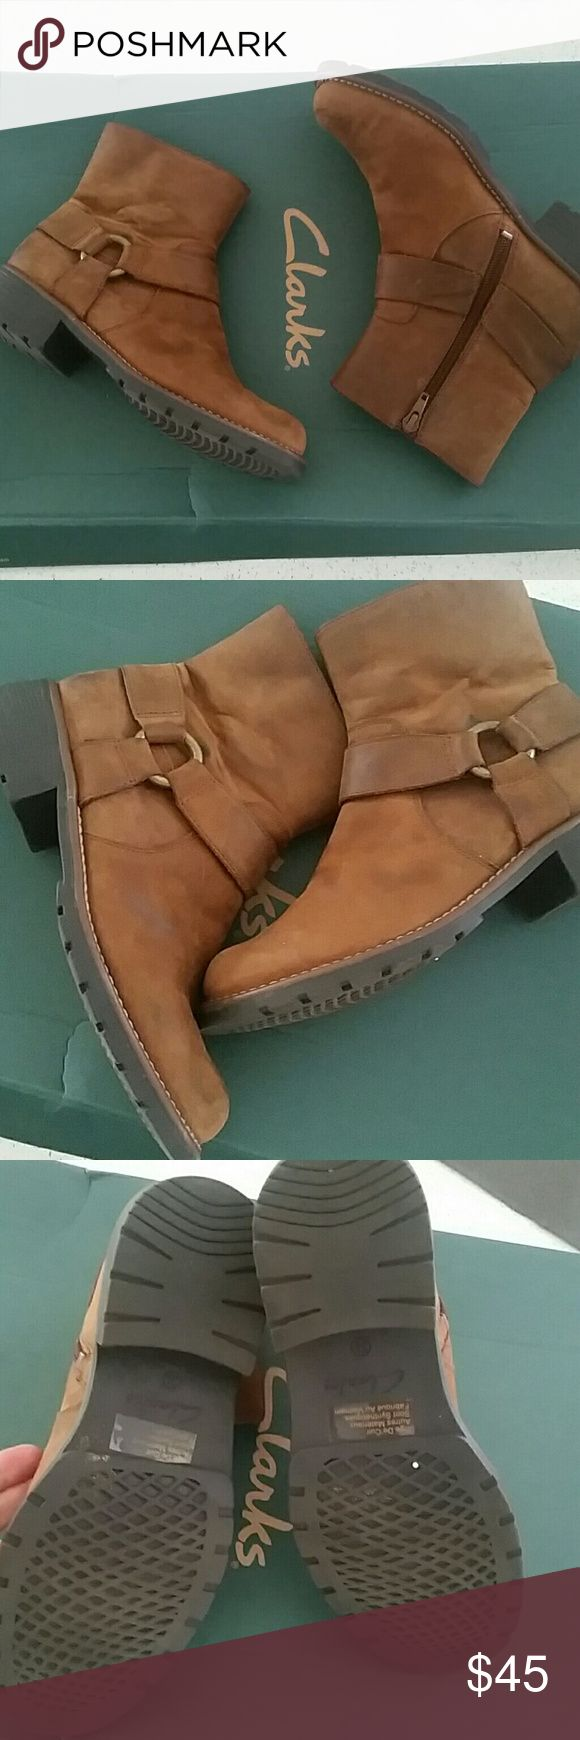 Clarks booties In excellent condition.  Size 6 leather upper. Black stains easy to remove with proper solution. Clarks Shoes Ankle Boots & Booties